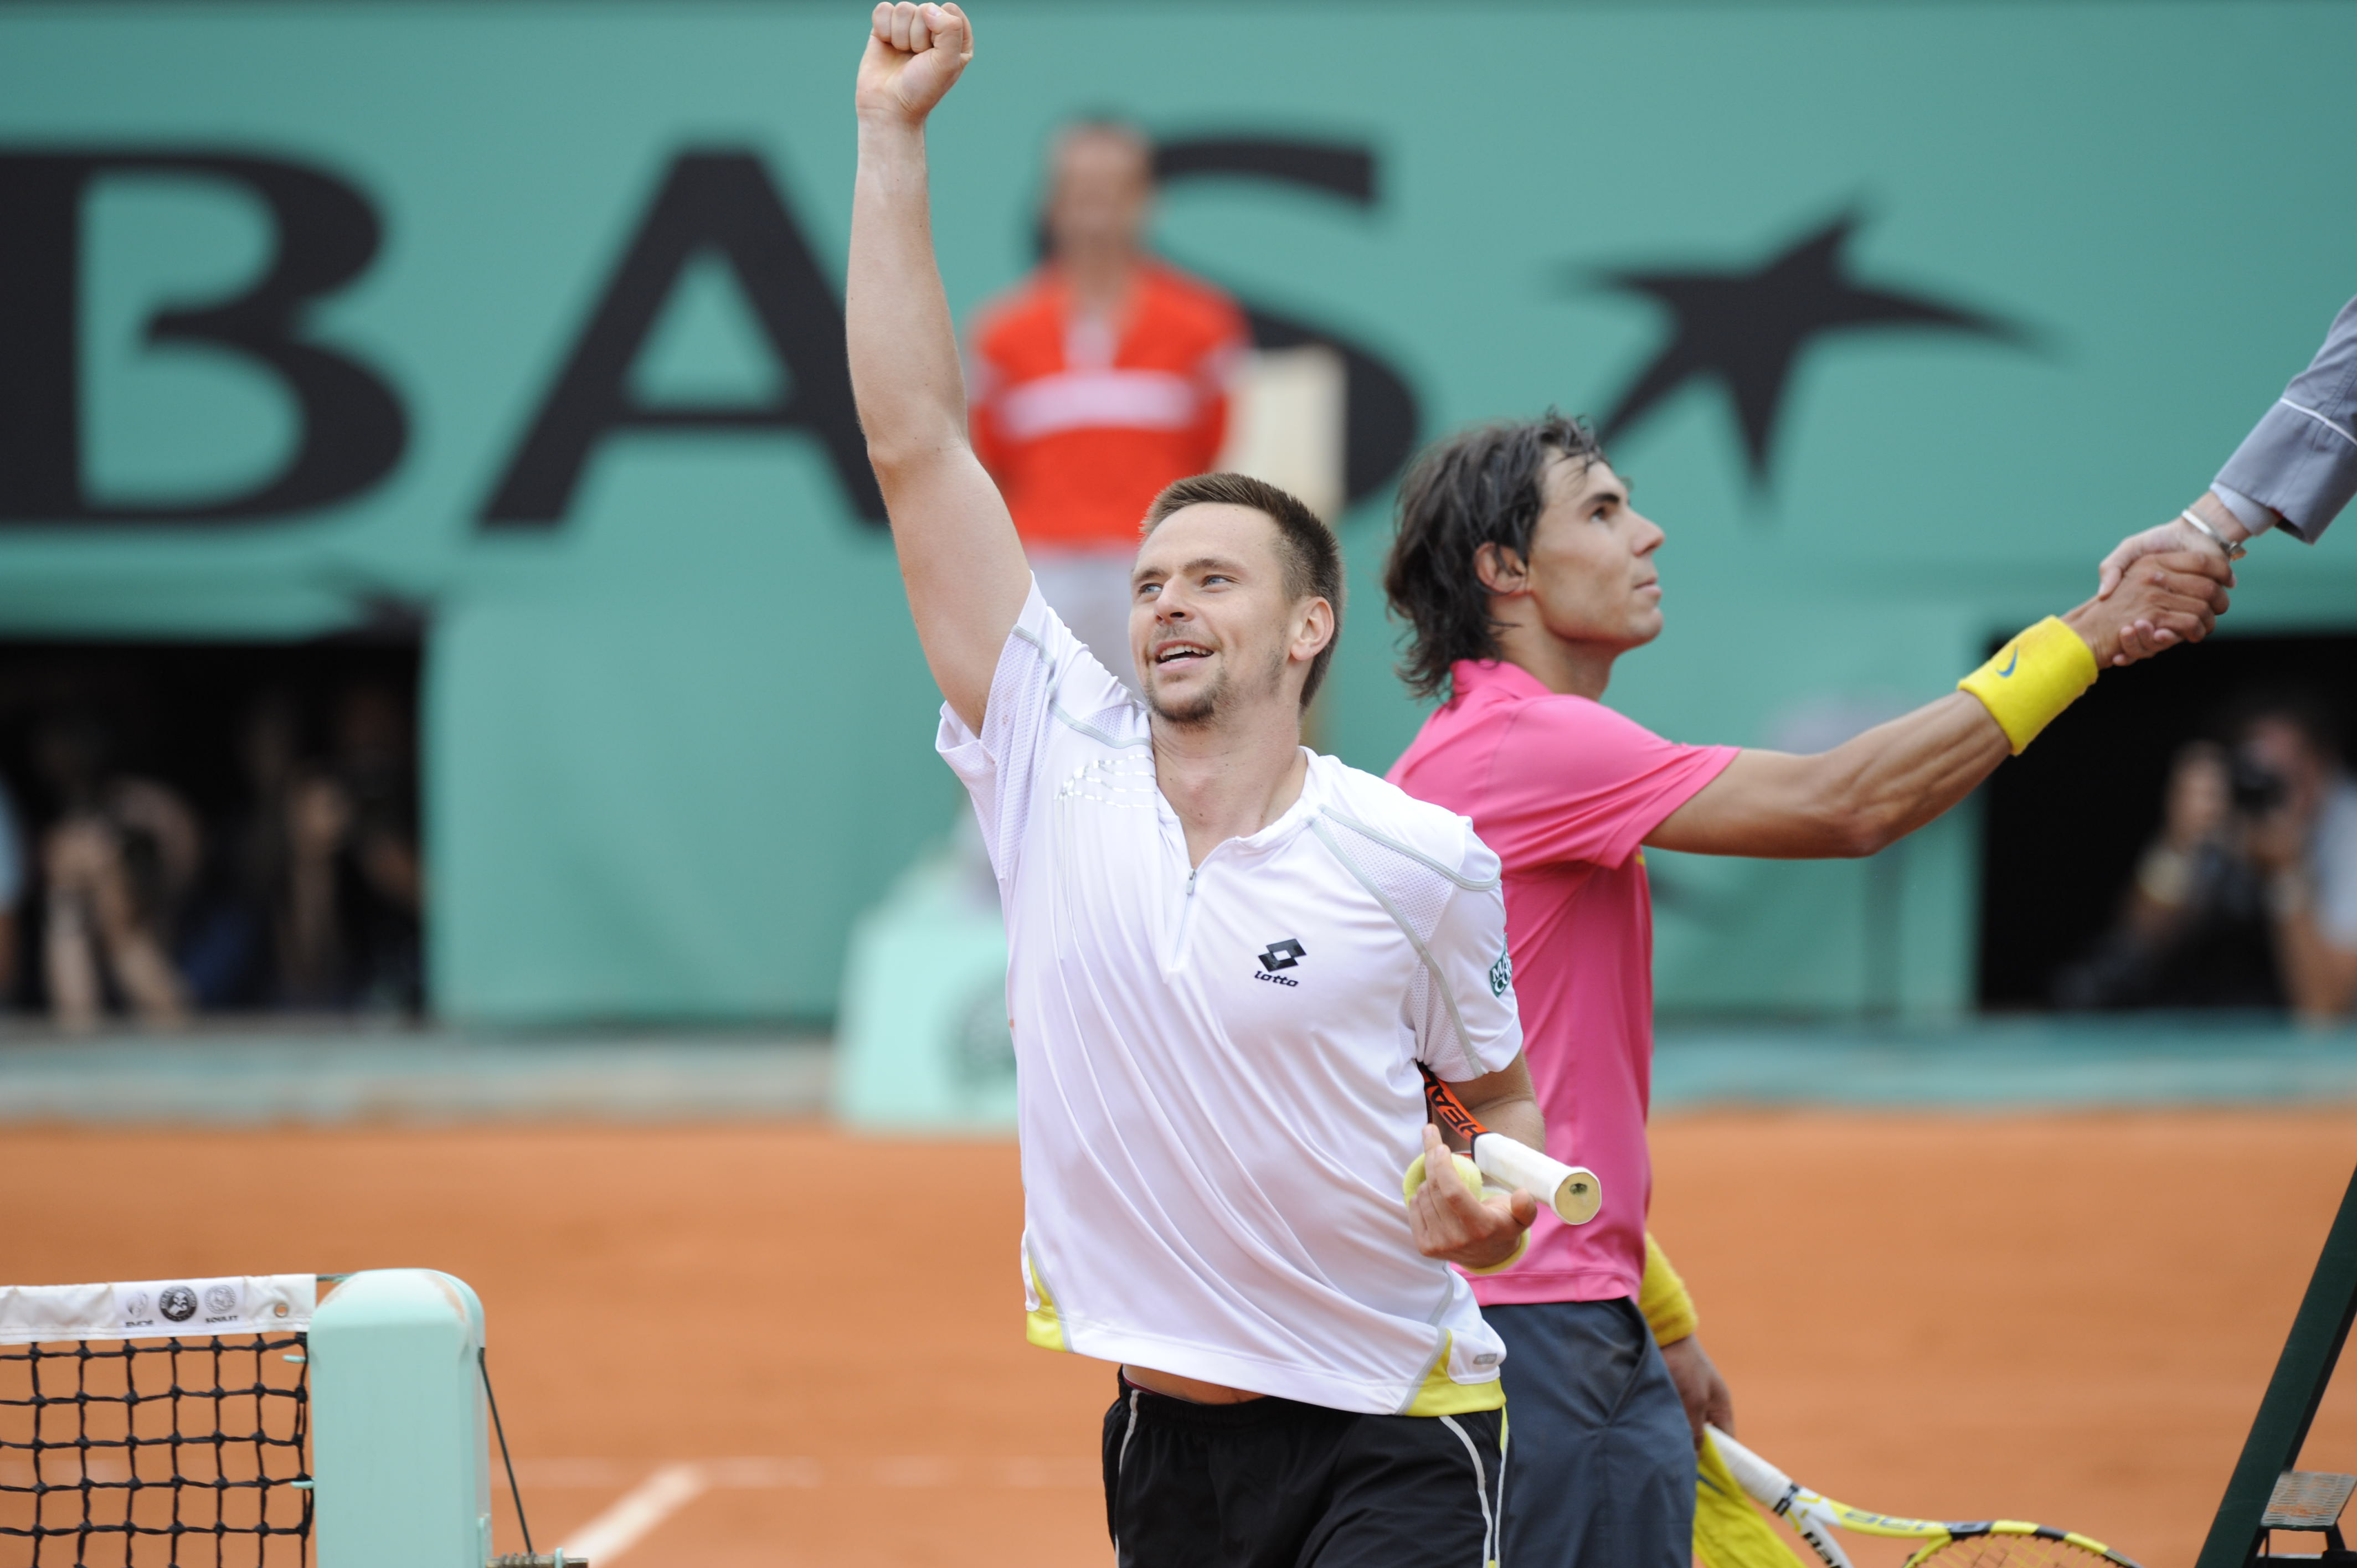 Robin Soderling celebrates his defeat of Rafael Nadal in the fourth round at Roland-Garros in 2009.